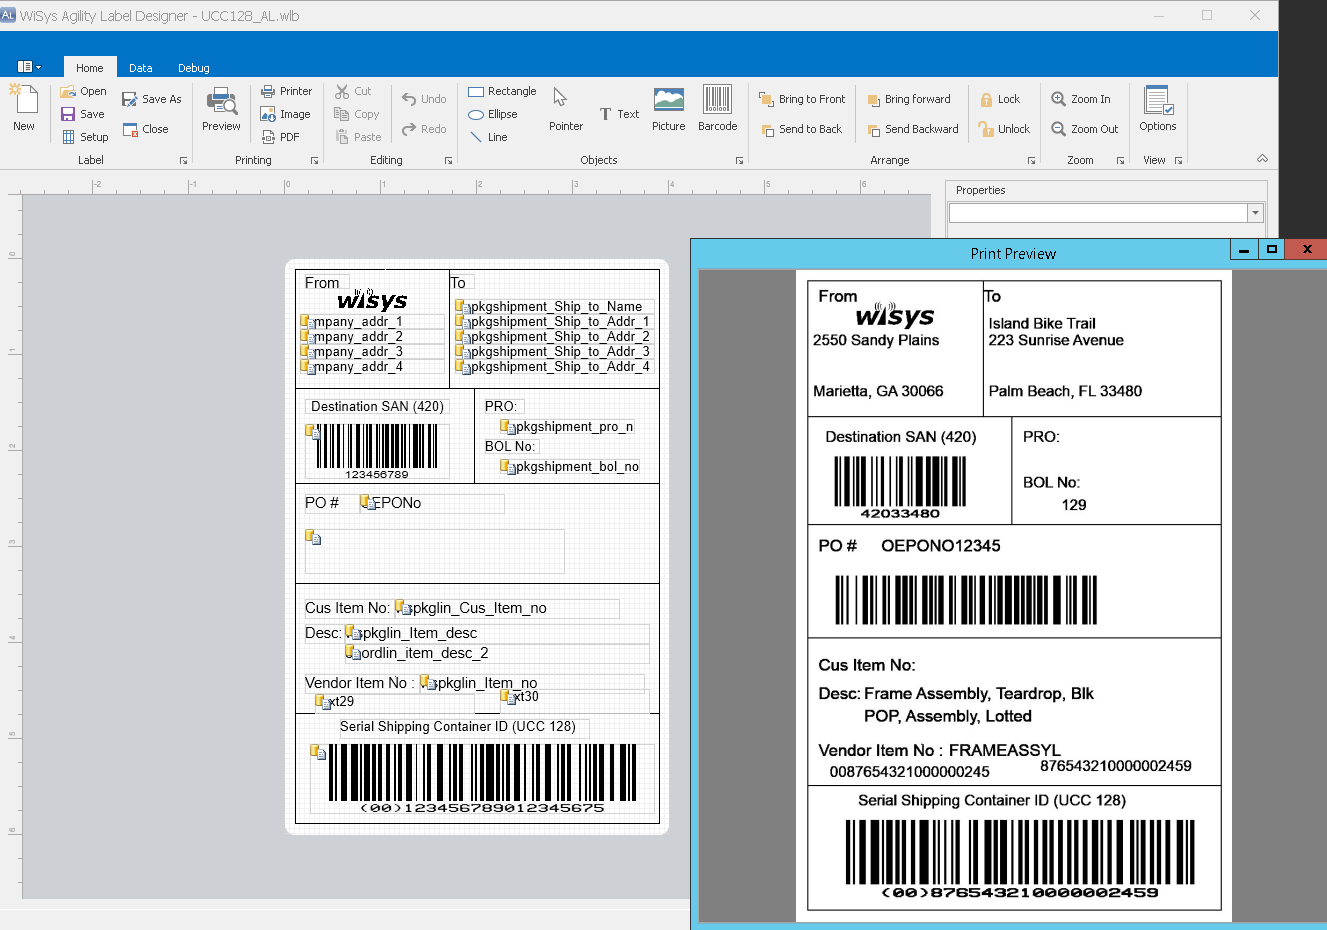 How to Create Labels in the New Agility Label Designer